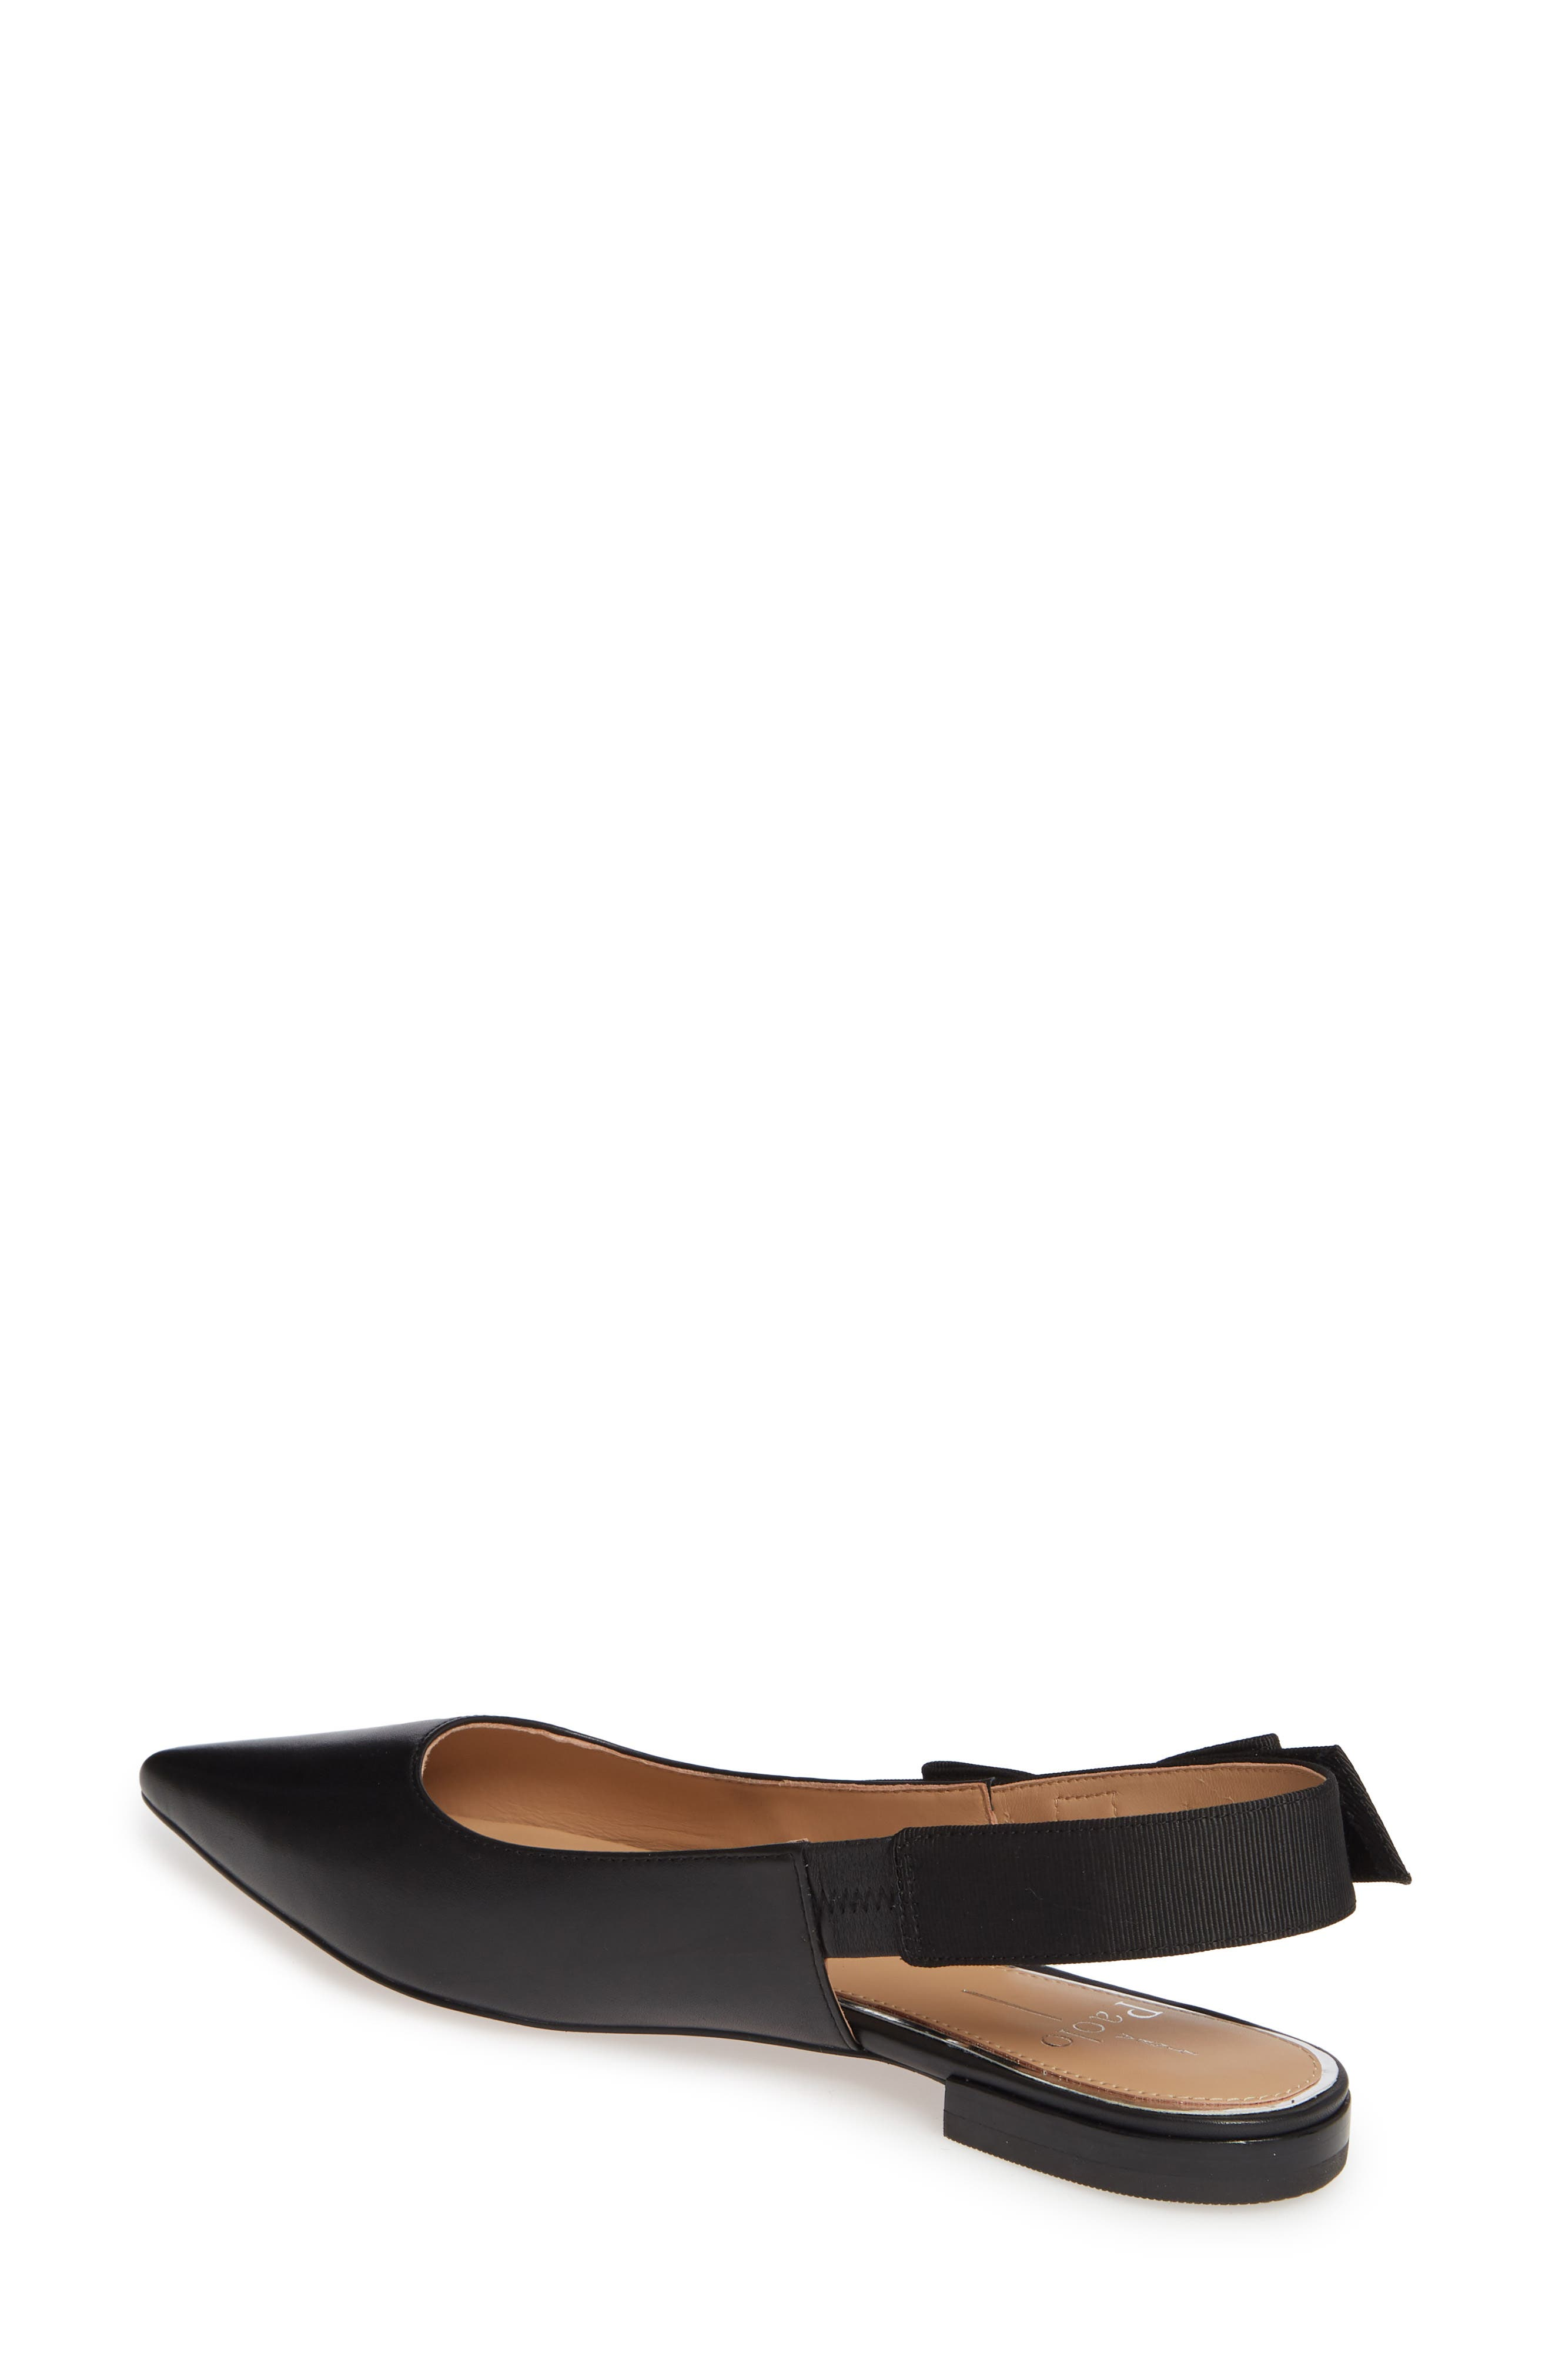 LINEA PAOLO, Darcy Bow Slingback Flat, Alternate thumbnail 2, color, BLACK LEATHER